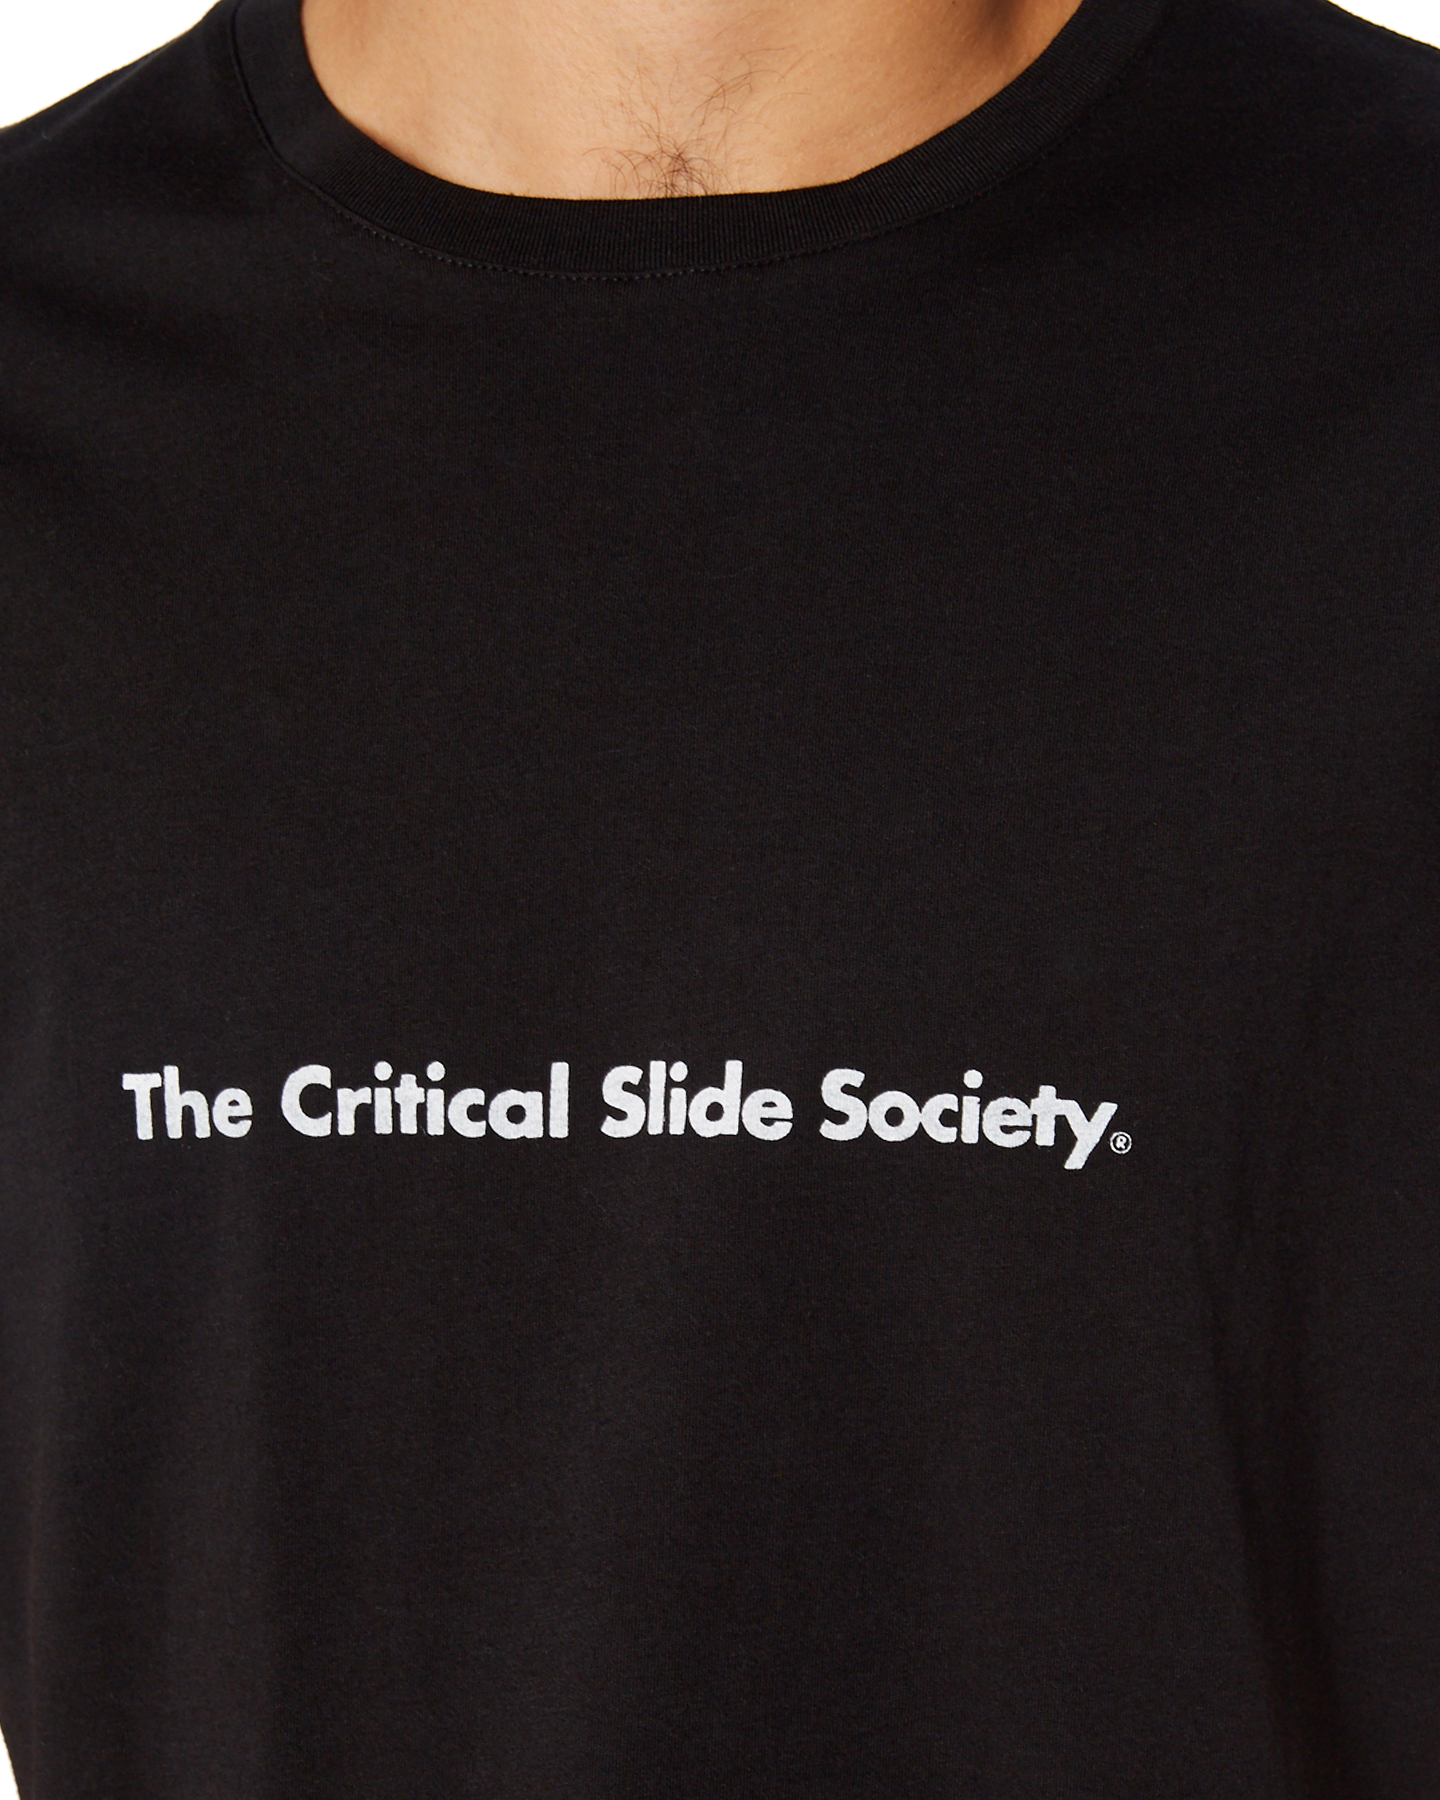 5f7b45f606 Details about New The Critical Slide Society Men's Commune Mens Tee Black